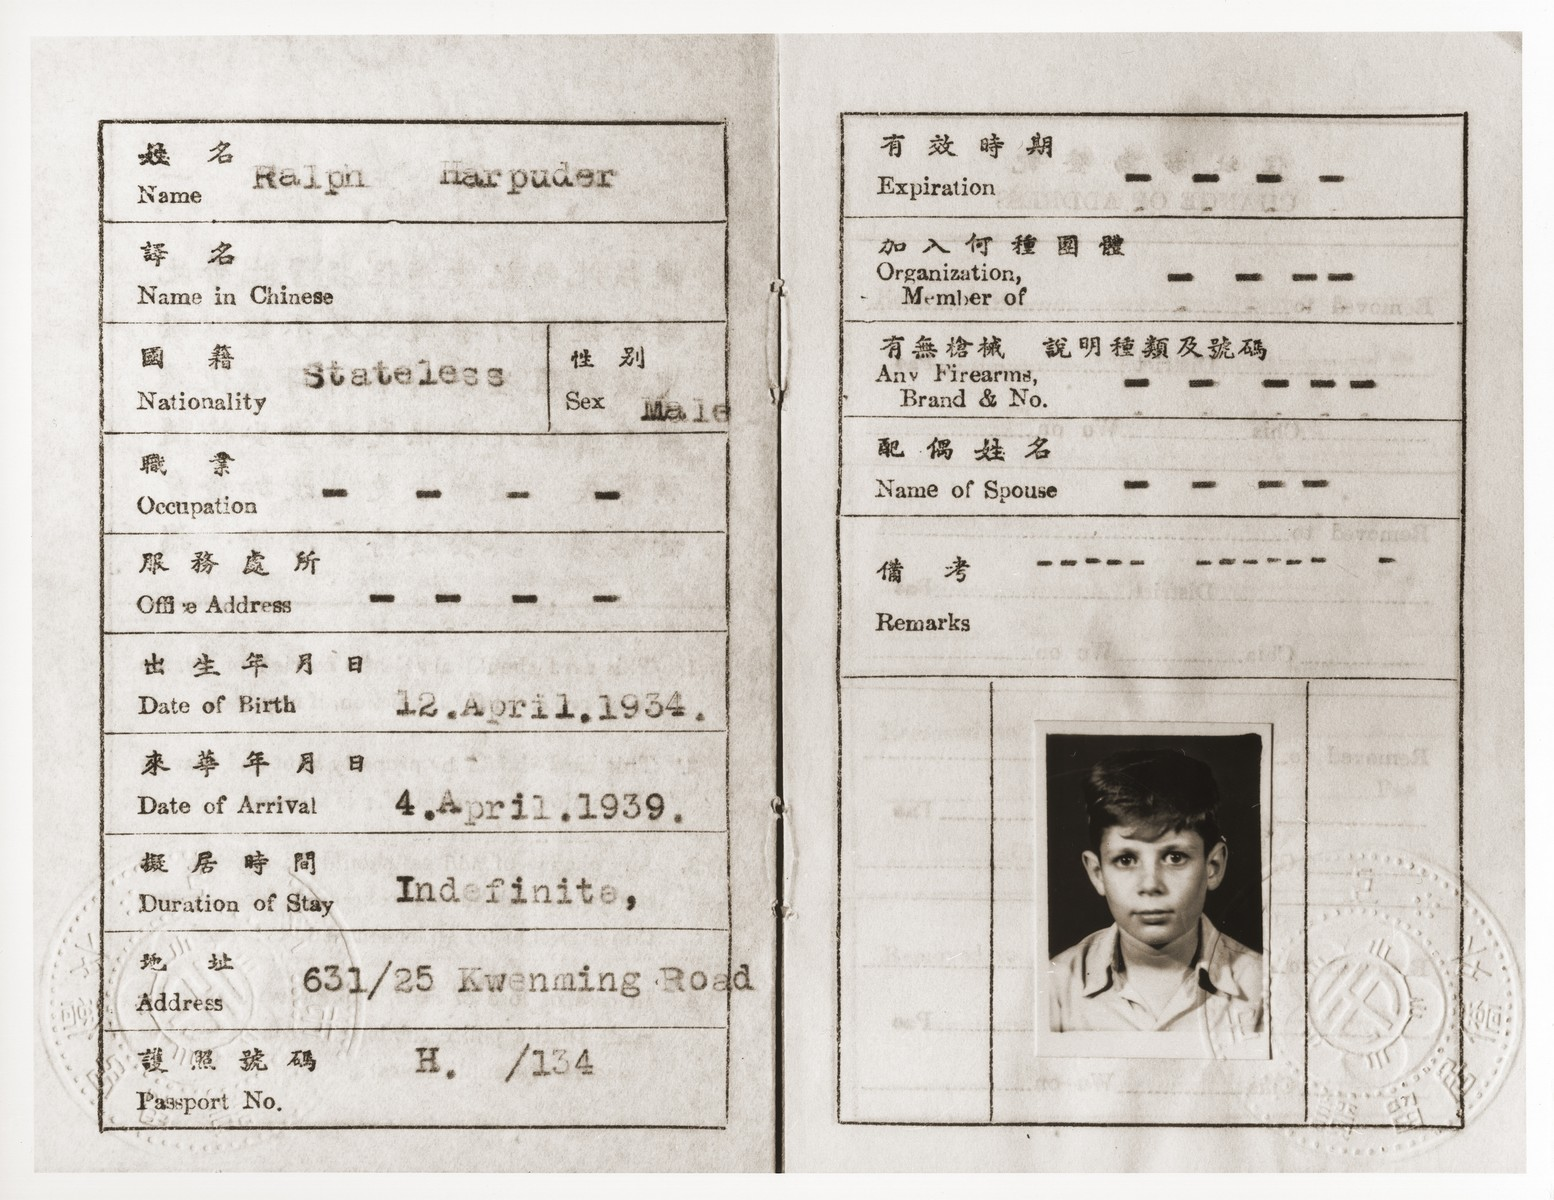 Inside page of Ralf Harpuder's Shanghai foreign resident certificate.